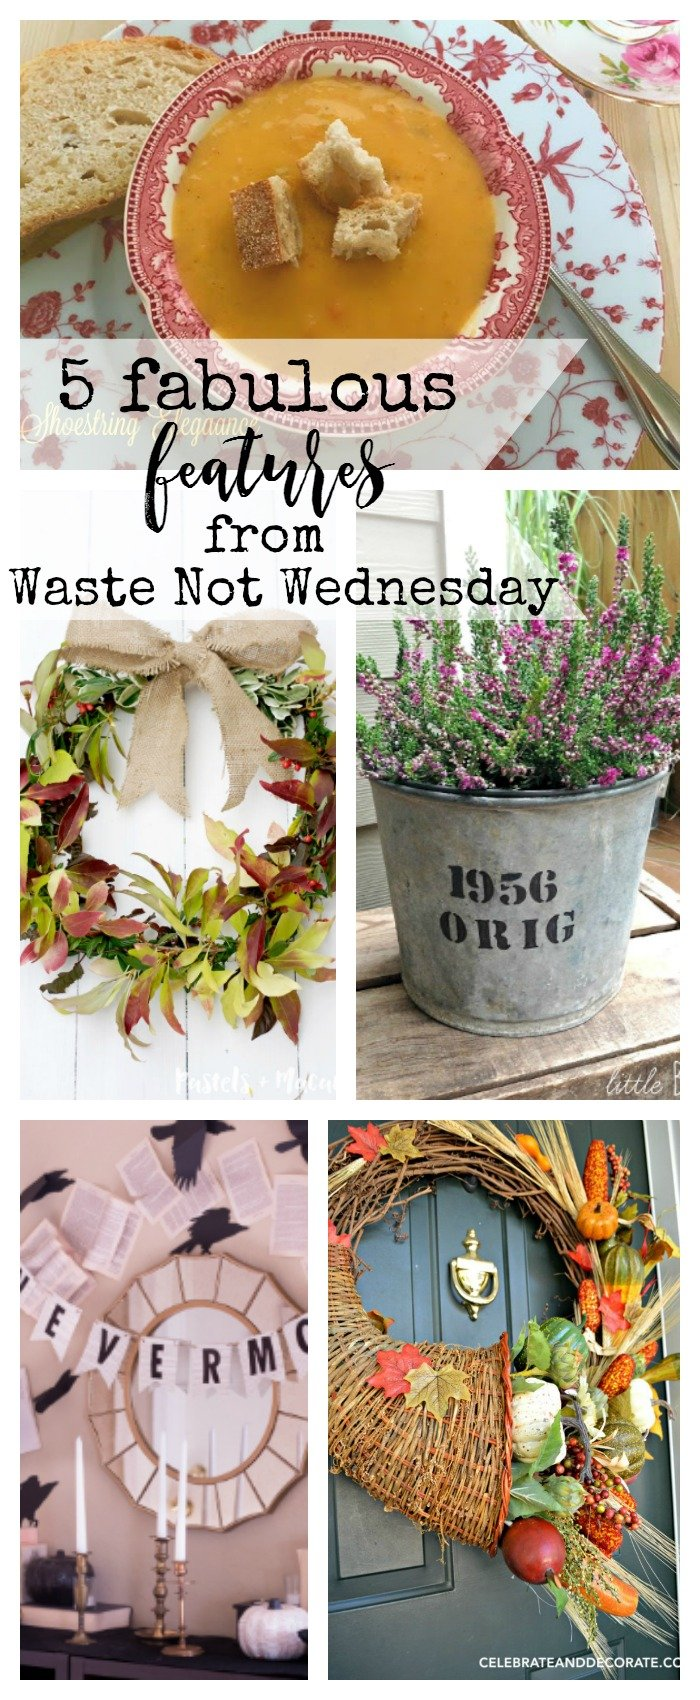 Features from our fun Waste Not Wednesday-21 DIY, Craft, Home Decor and Recipe party this week! Be sure to join us and share your DIY, Craft, Home Decor and favourite recipes! | www.raggedy-bits.com | www.mythriftyhouse.com | www.smallhomesoul.com | www.gratefullyvintage.com